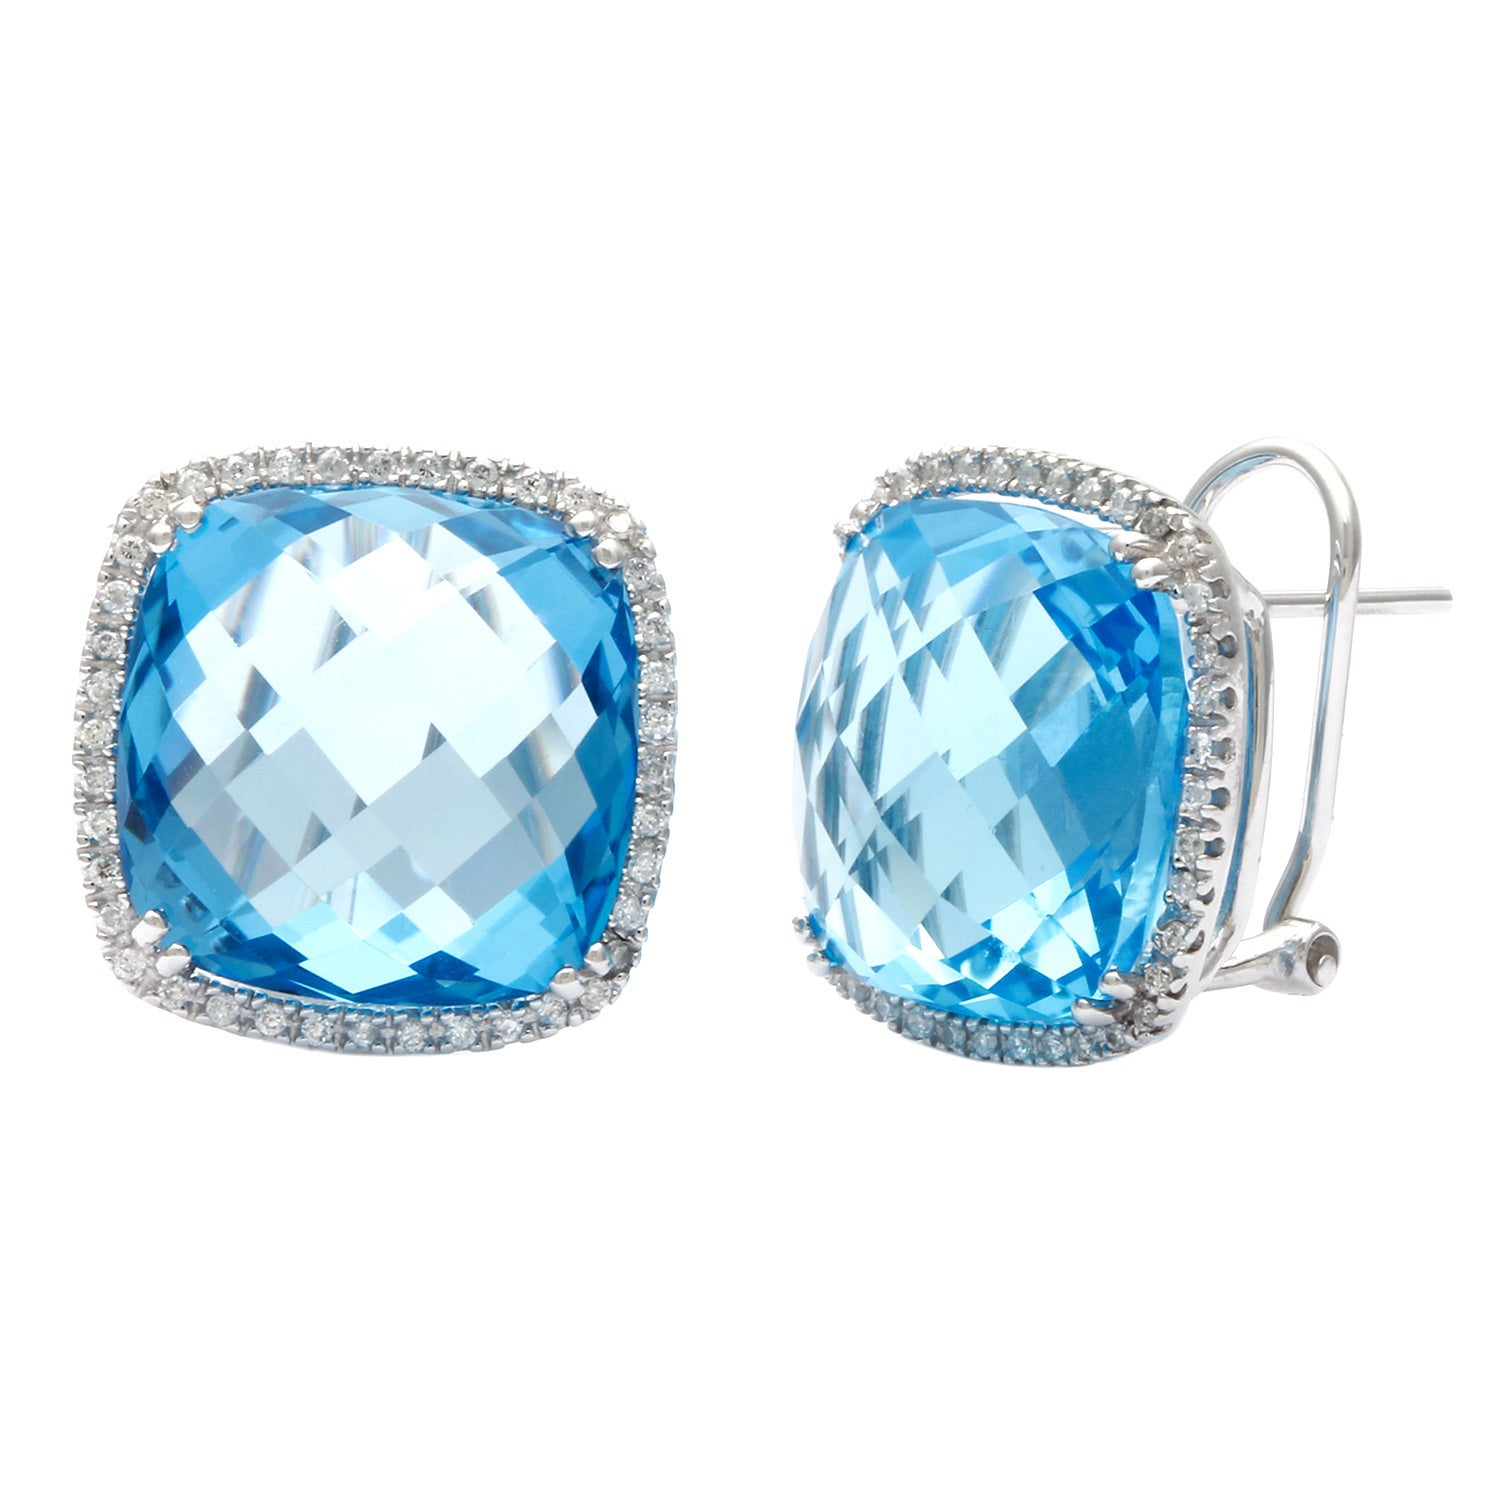 Kabella Jewelry 18k Gold Diamond and Cushion cut Blue Topaz Earrings